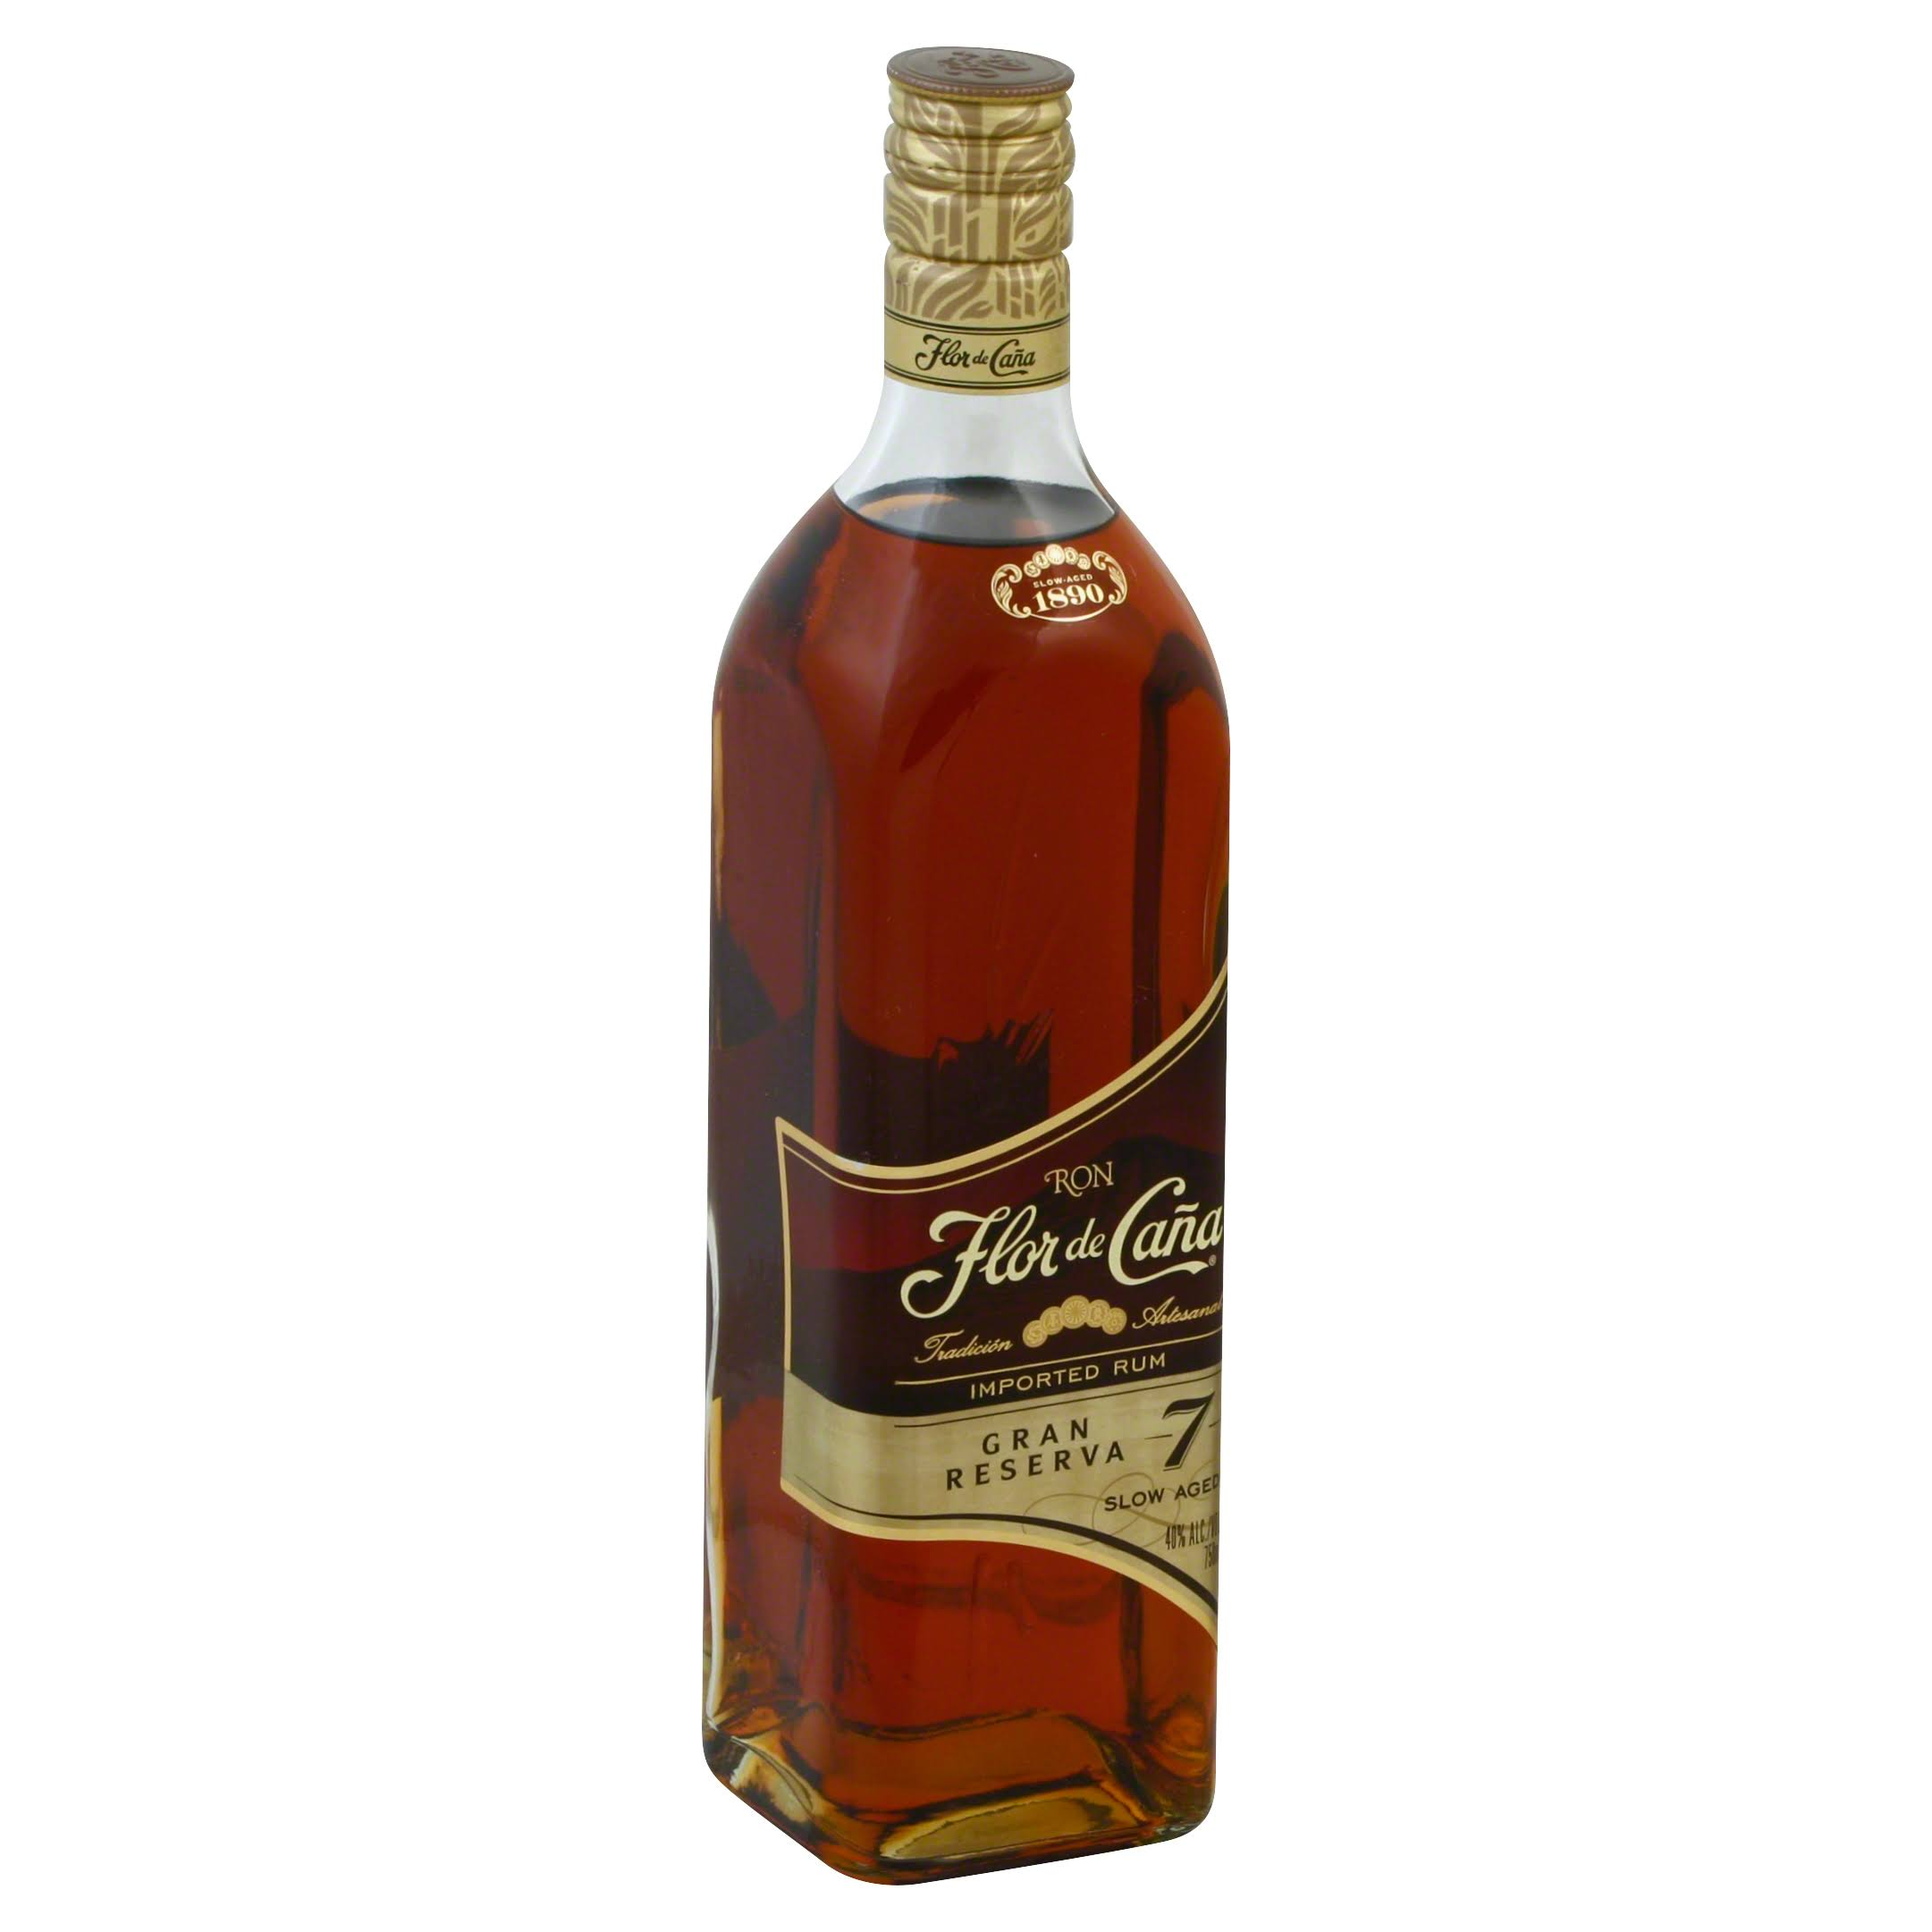 Flor De Cana 7 Year Old Grand Reserve Rum - 750ml